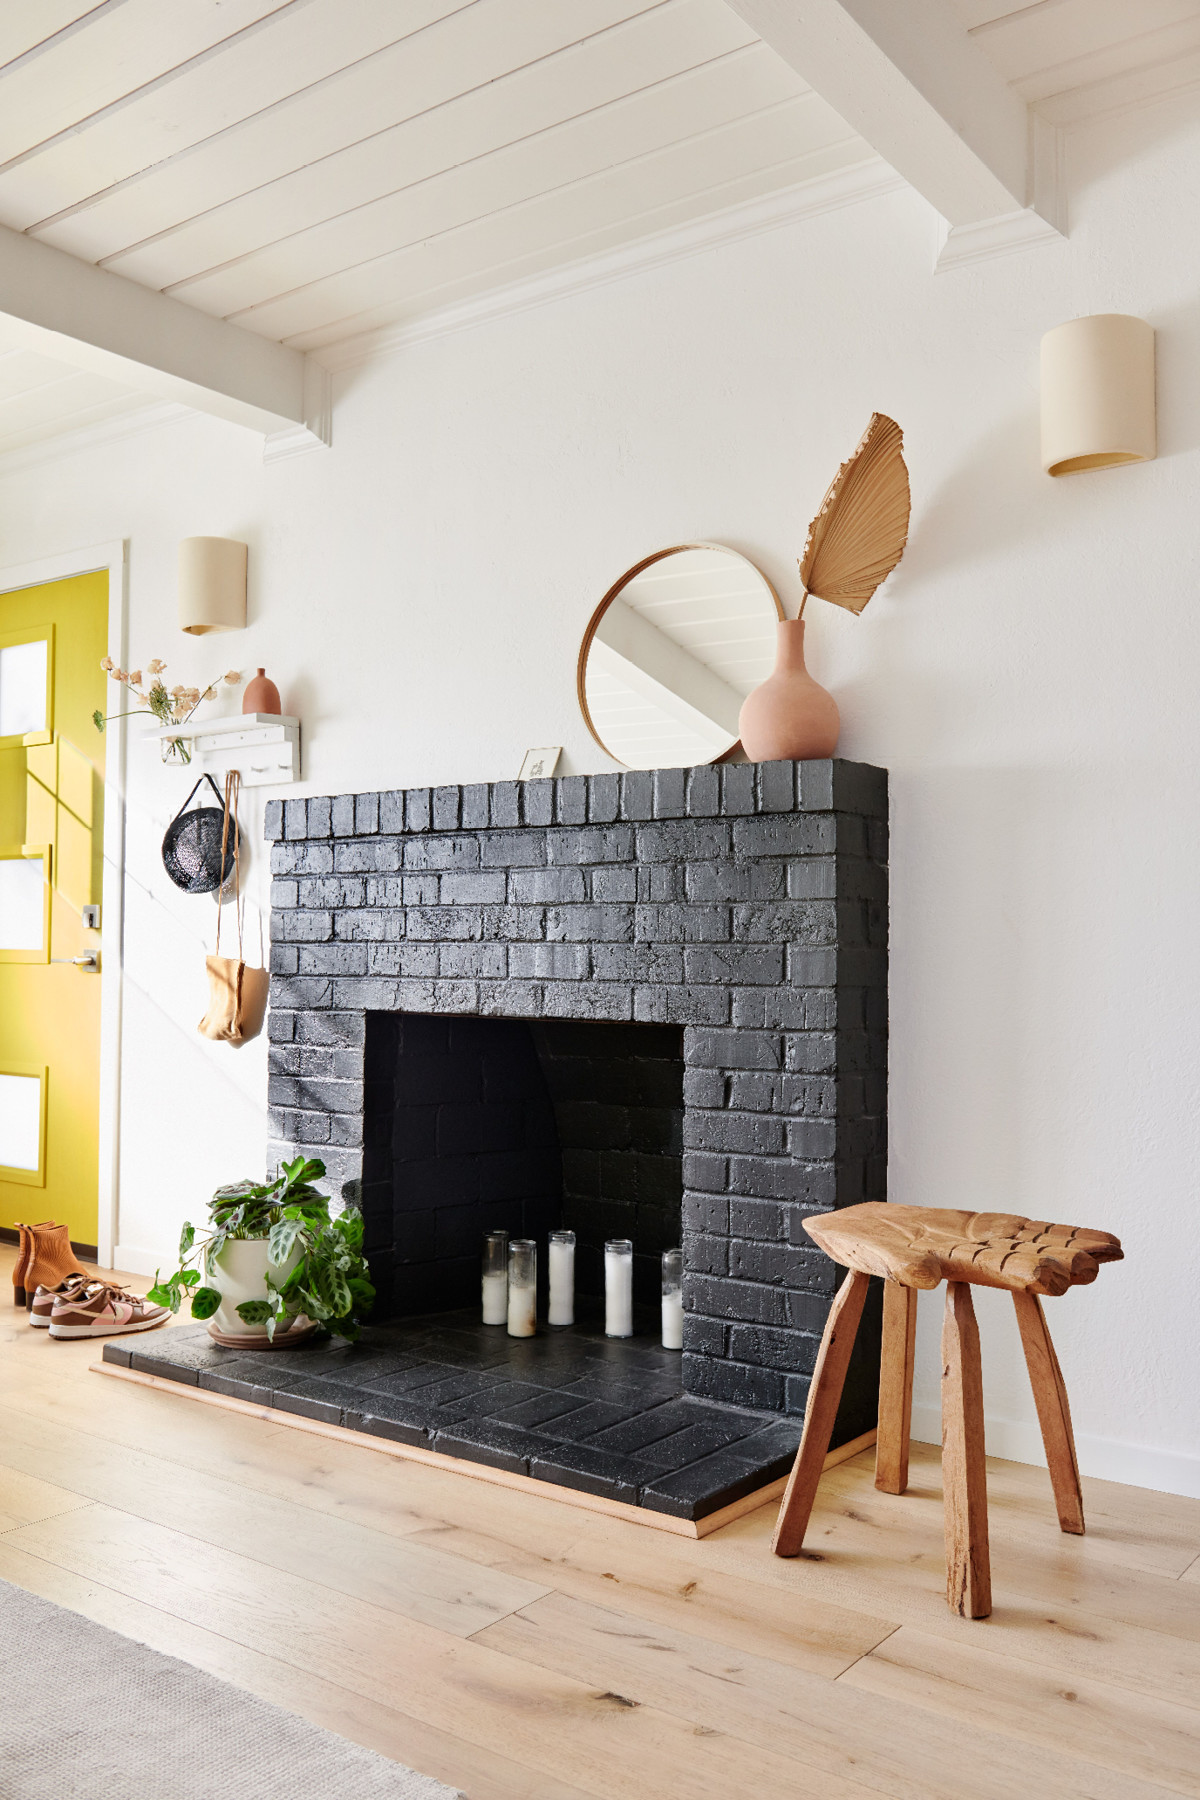 The living room's fireplace is painted an inky tone and is peppered with personal items, including one of del Rio's favorites — the hand-carved stool she acquired in Mexico.